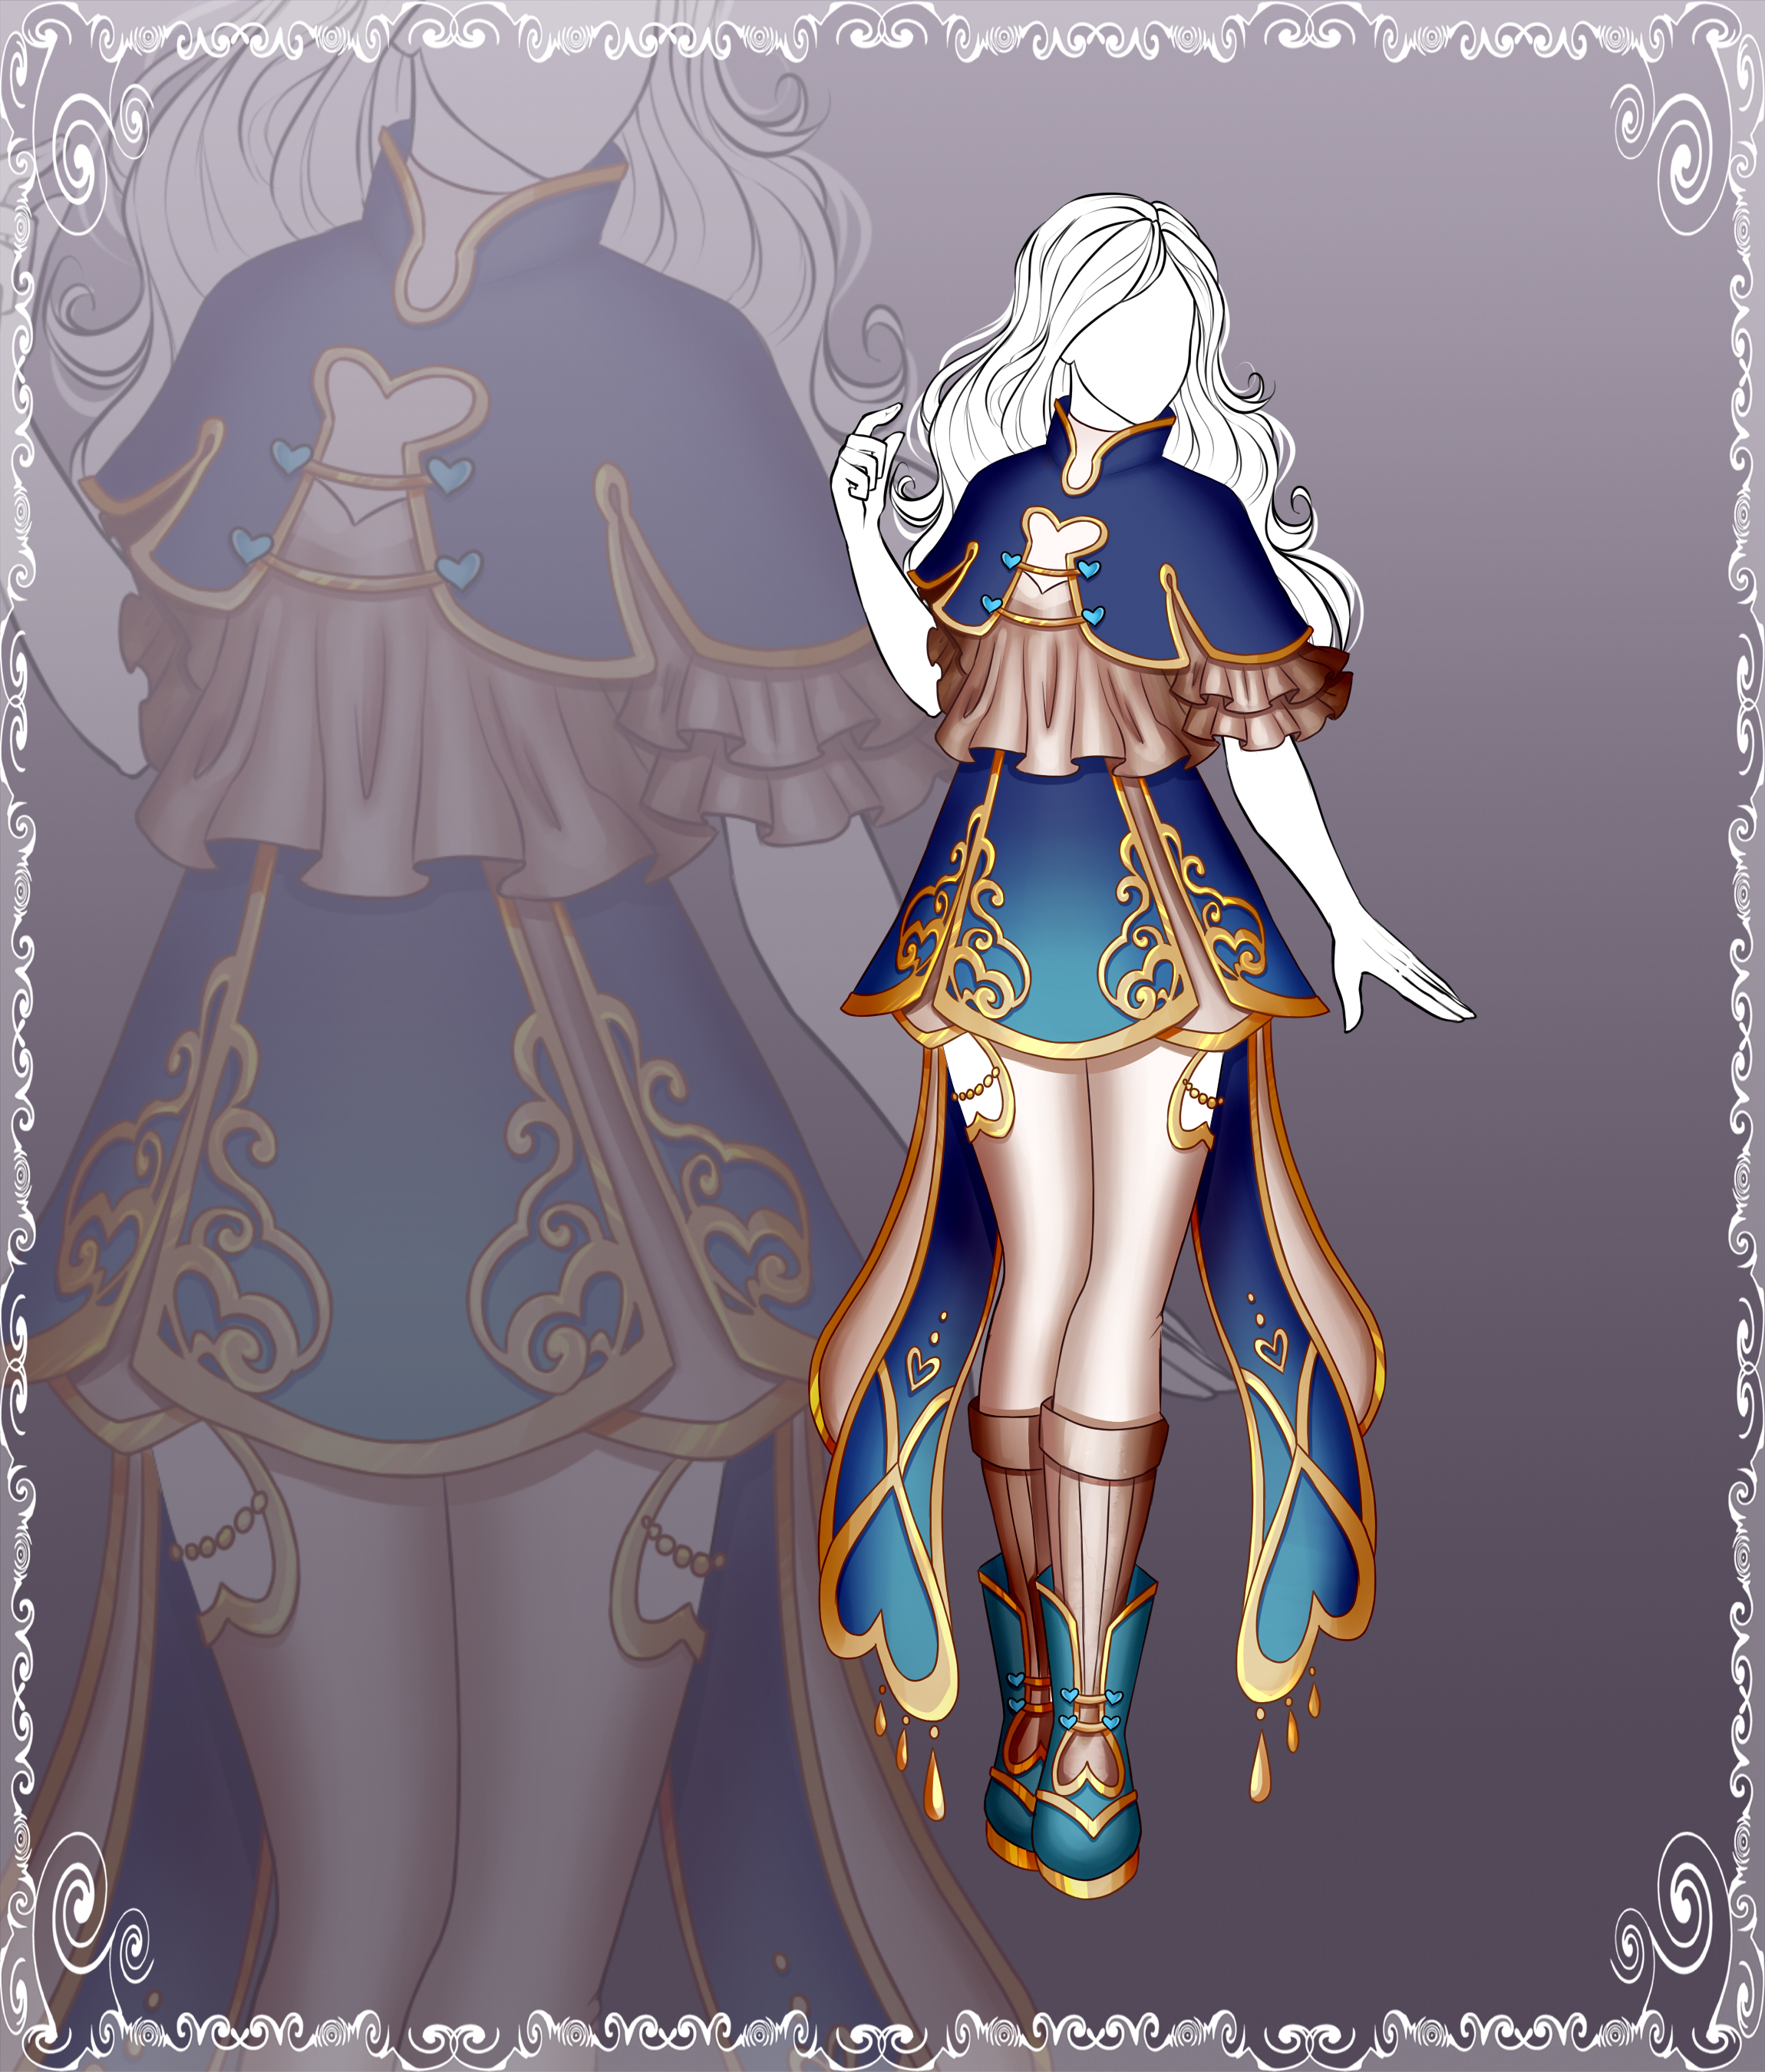 [Close] Adoptable Outfit Auction 140 by Kolmoys on